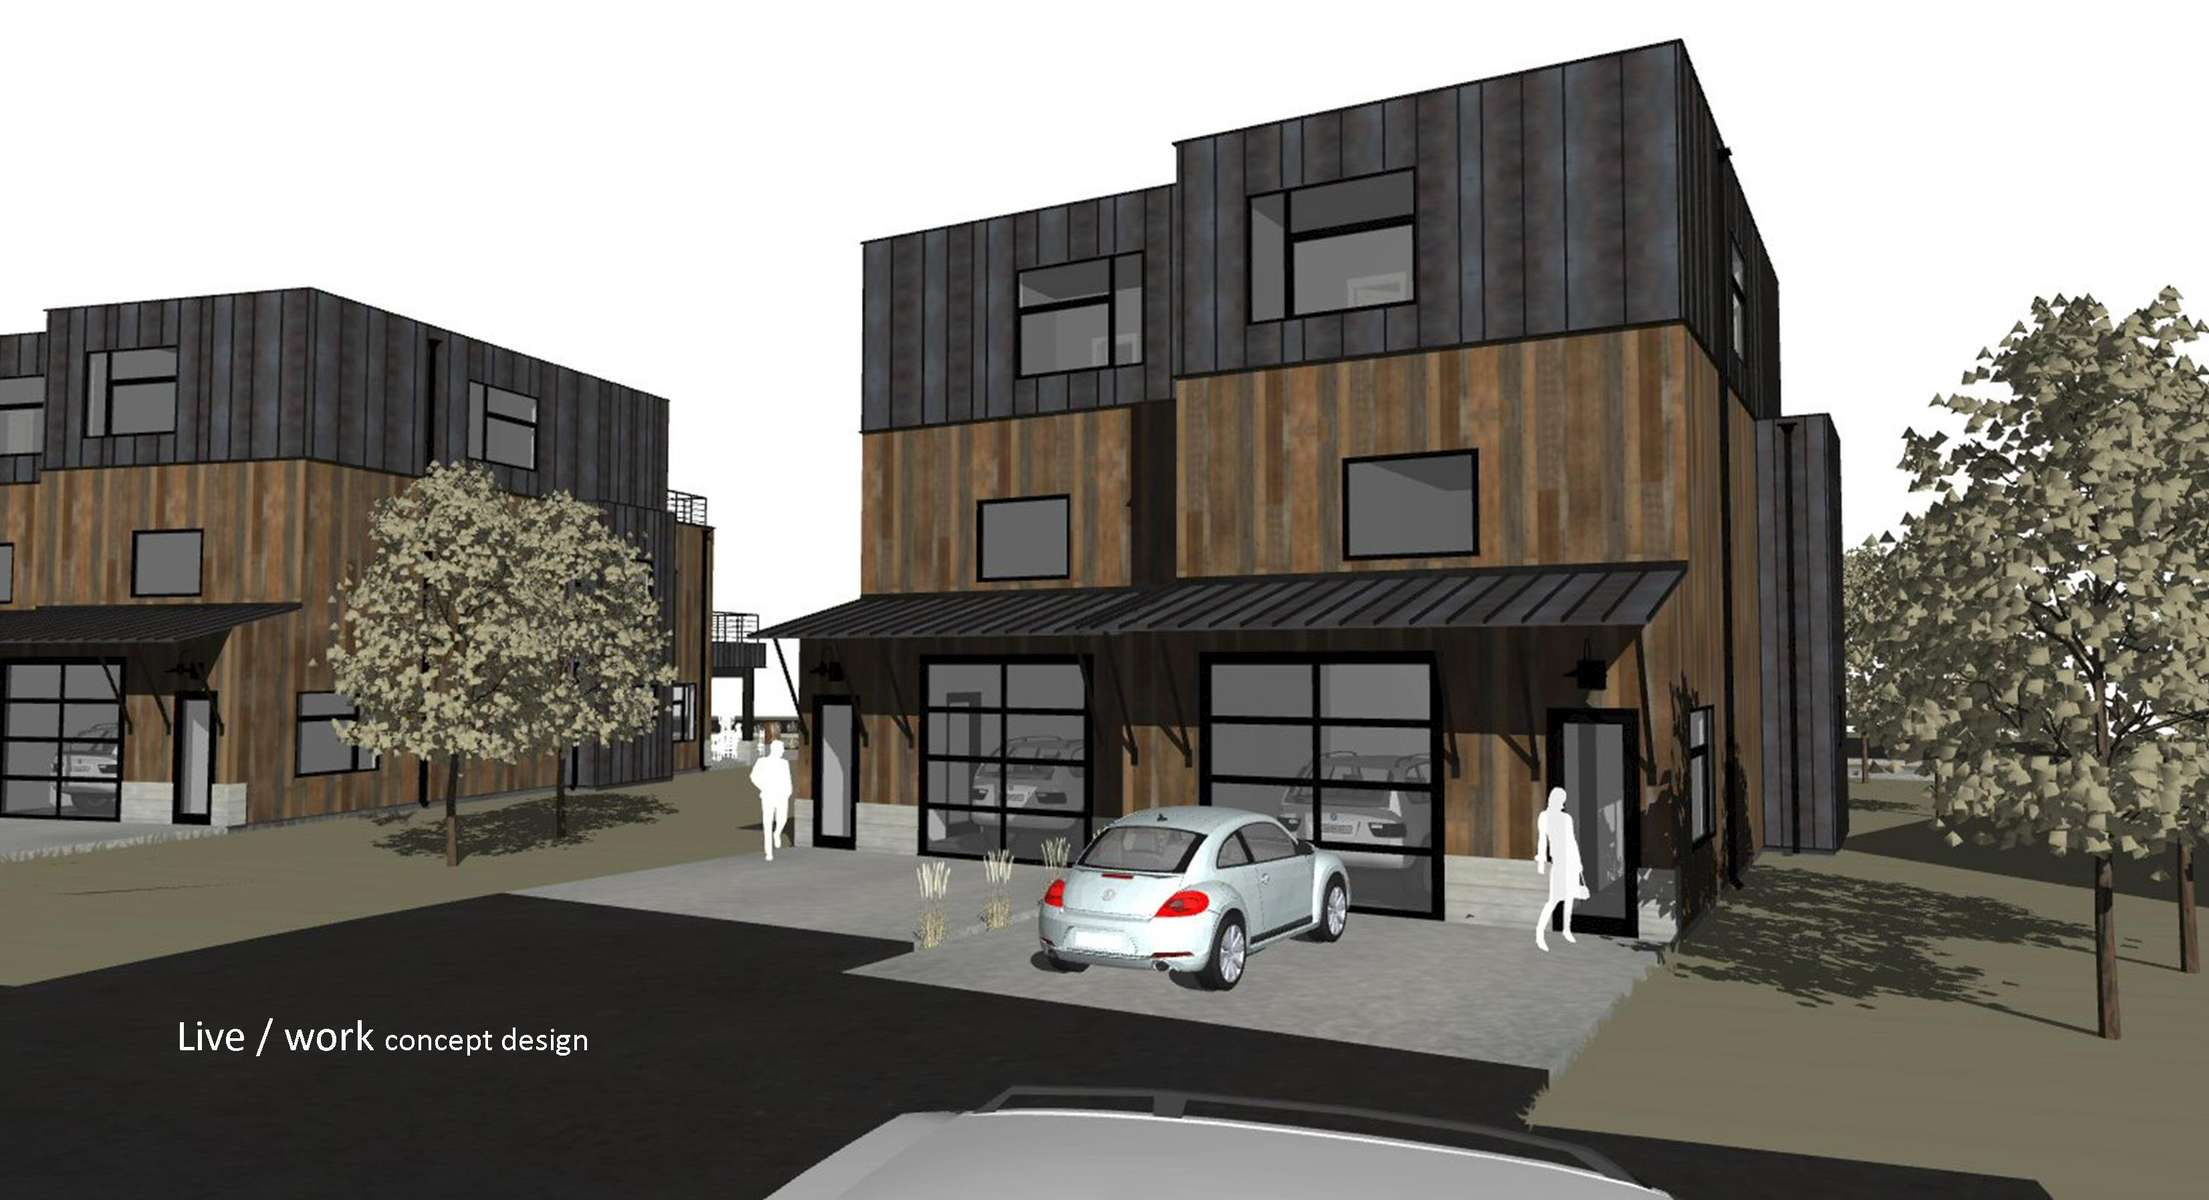 plan-west-design-firm-_-projects-in-process-712